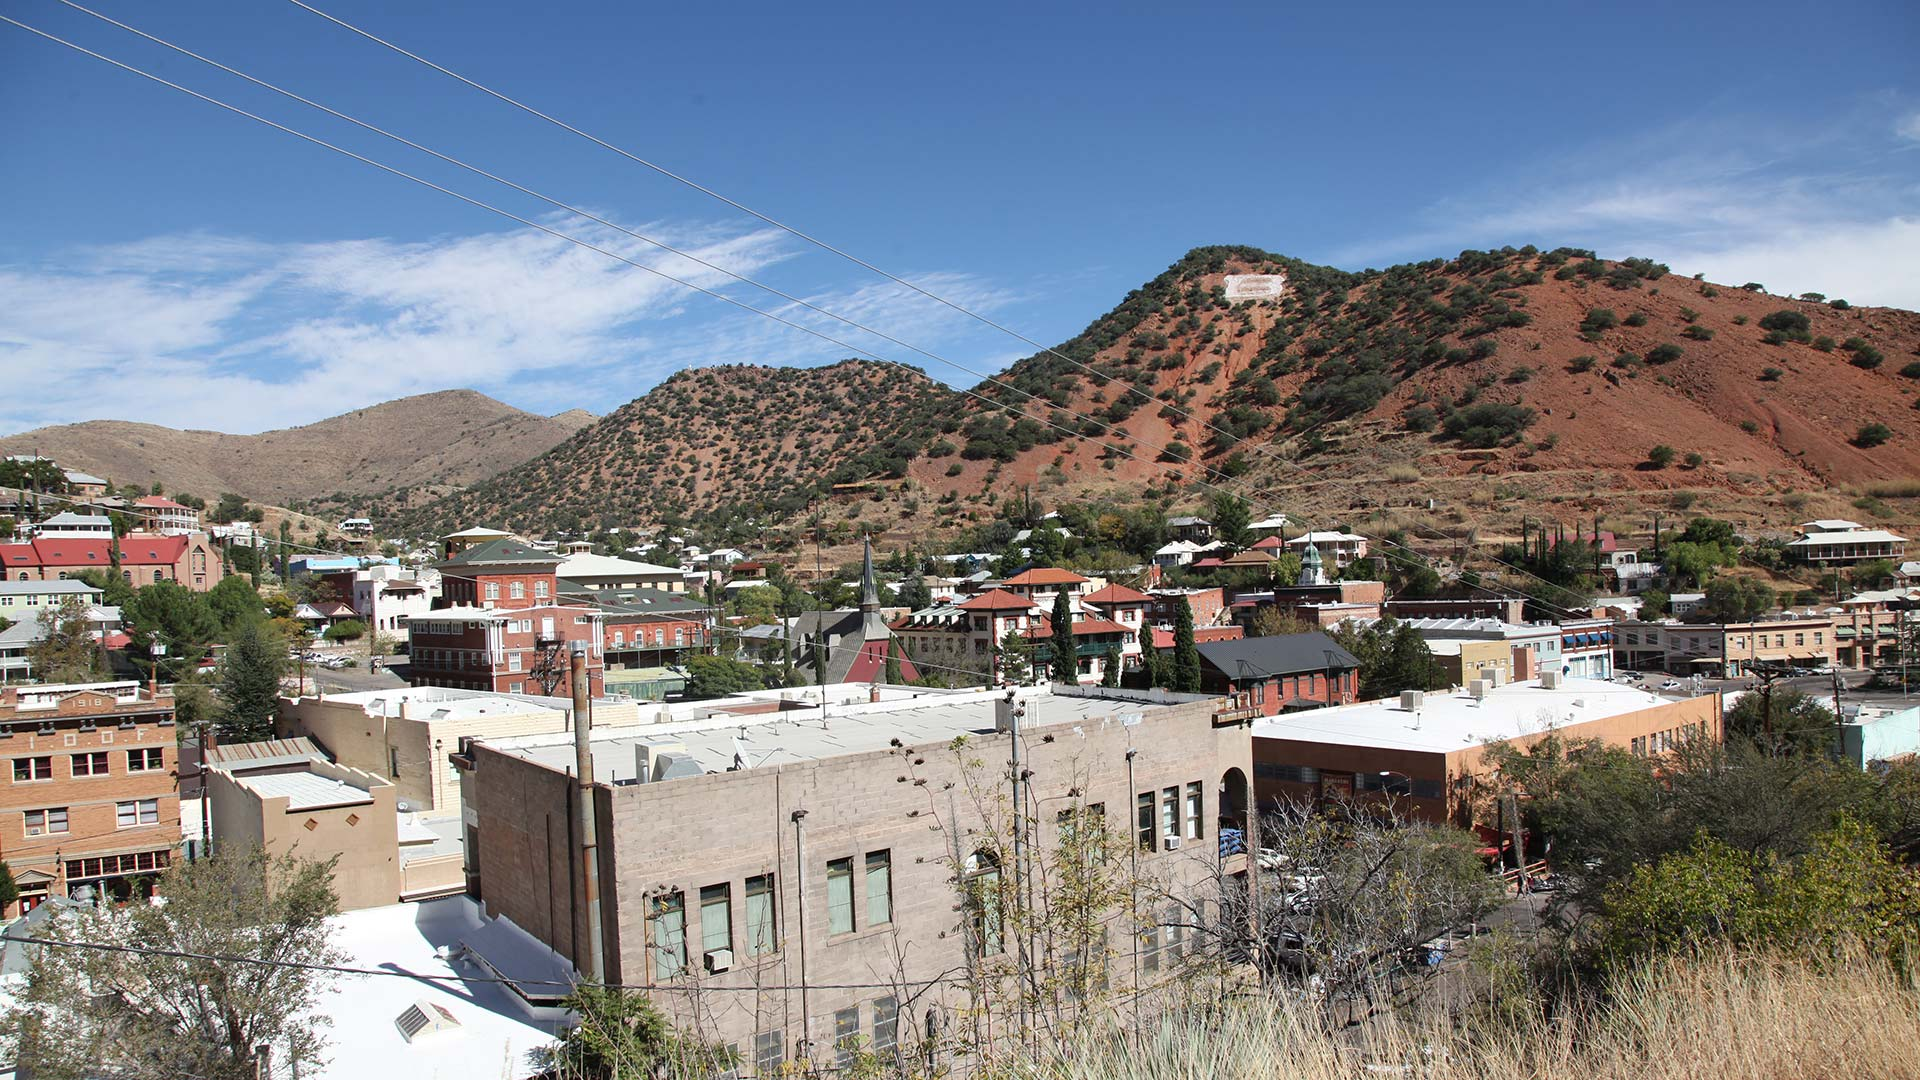 A view of downtown Bisbee.